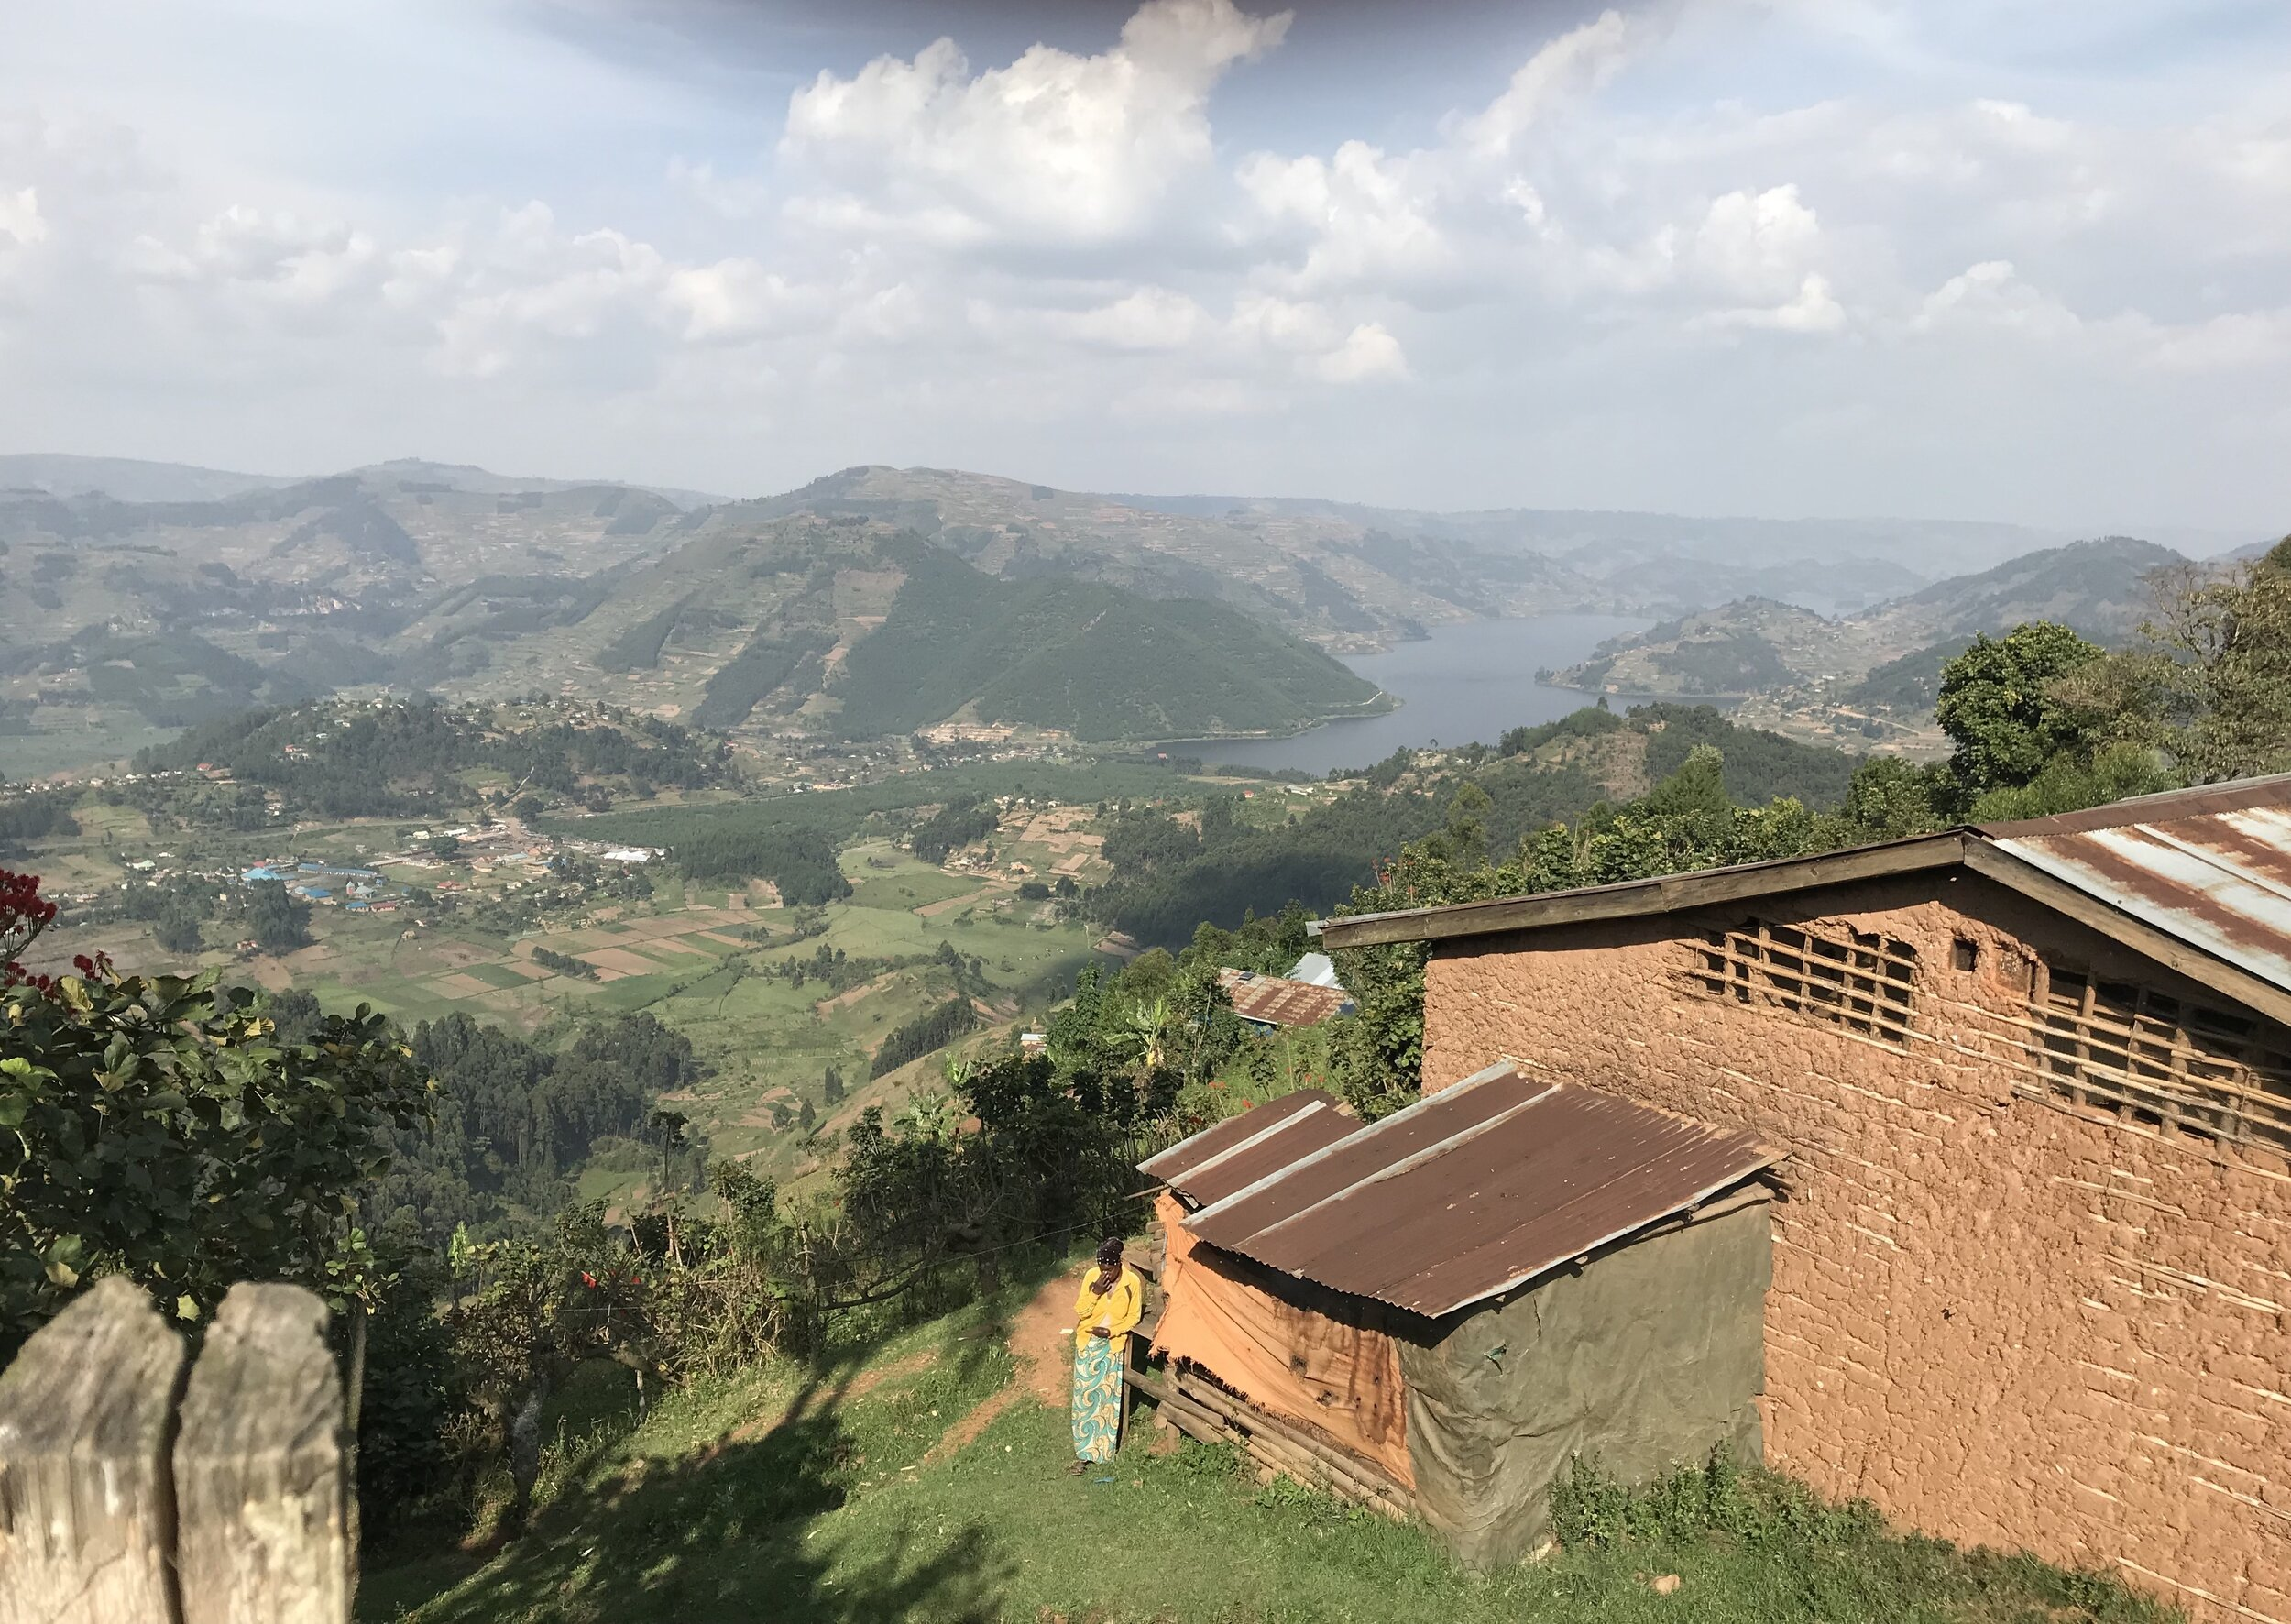 A view of beautiful Lake Bunyonyi from the mountain.